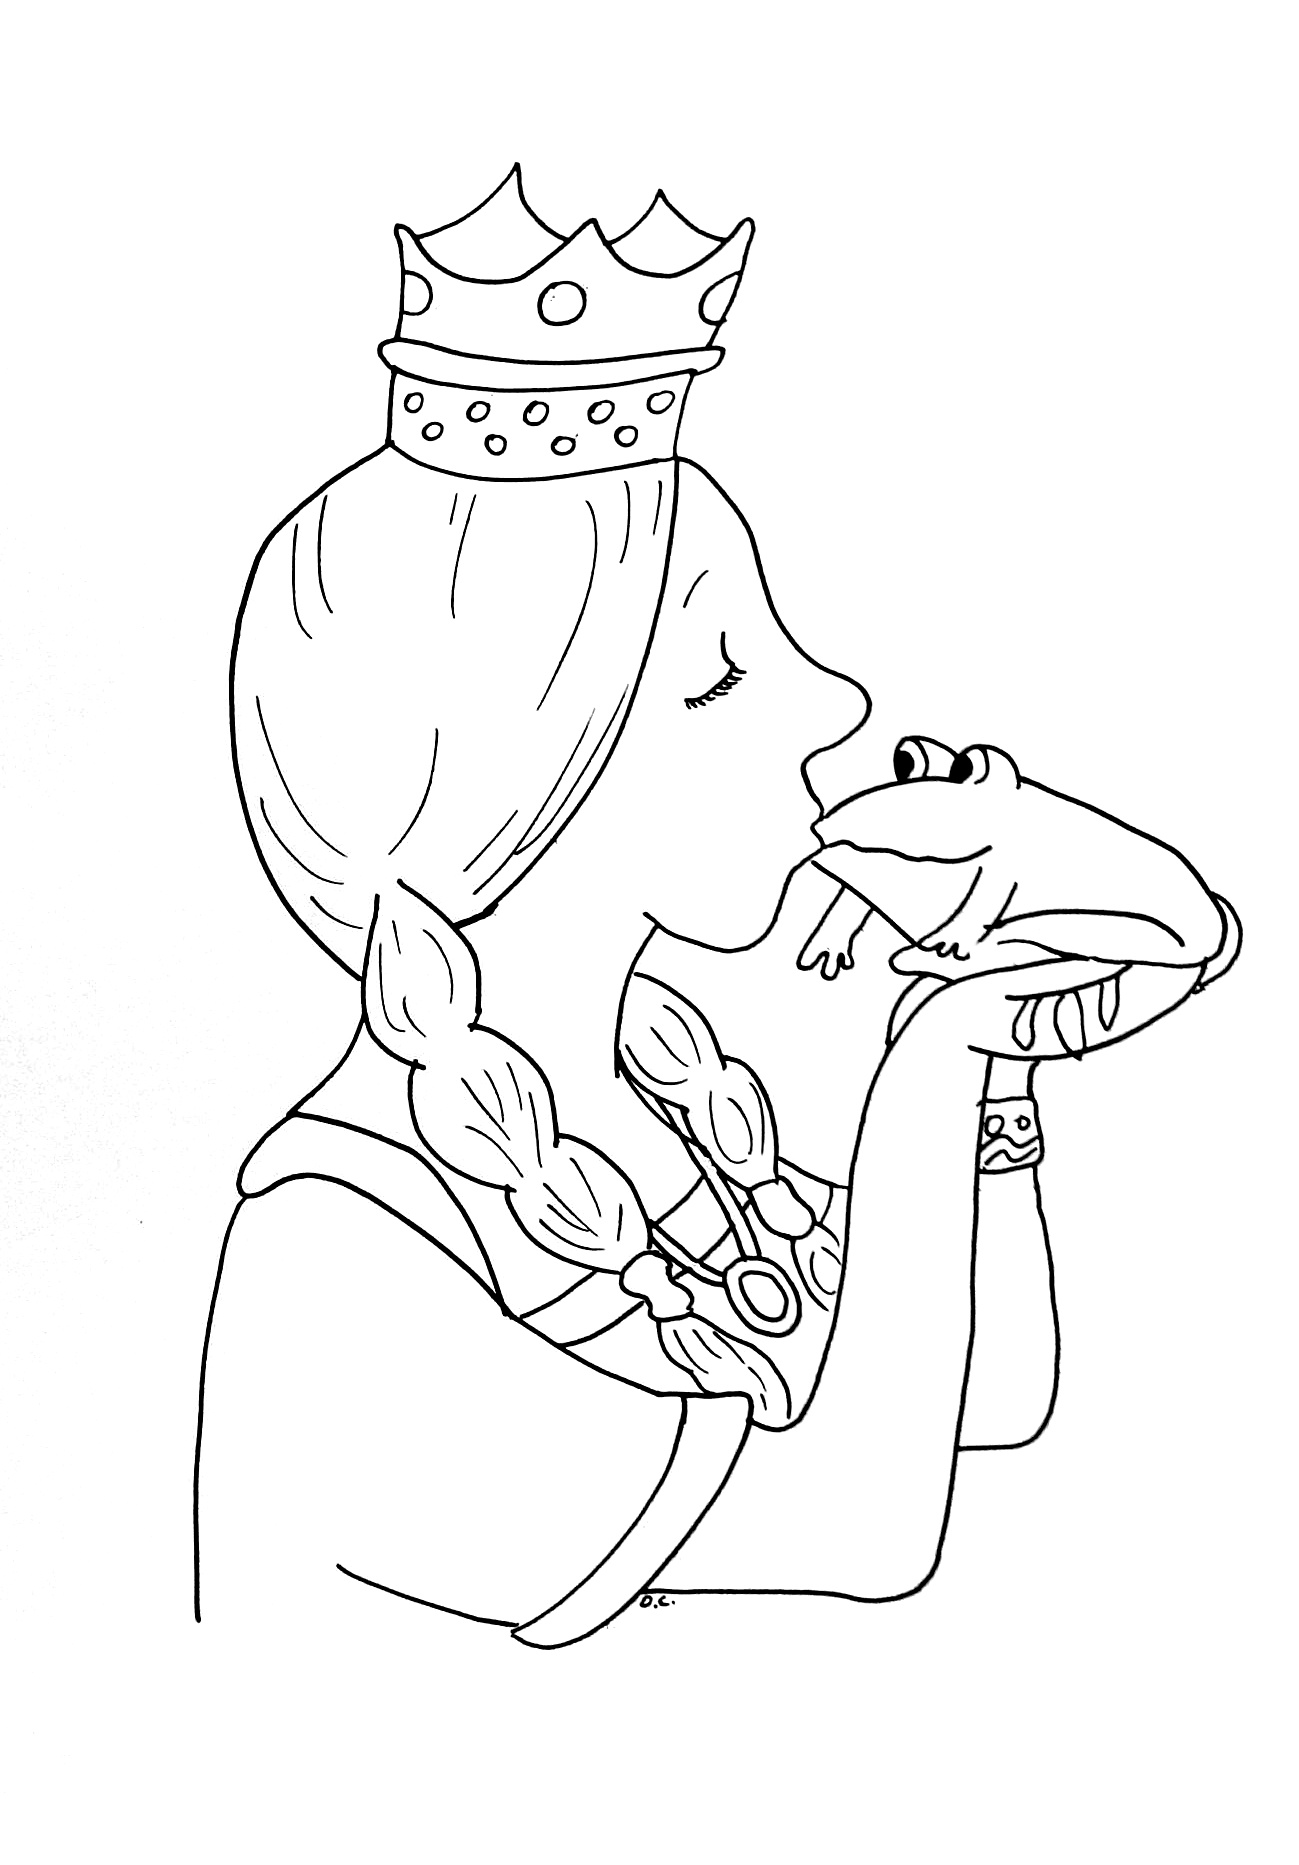 Princesses coloring page with few details for kids